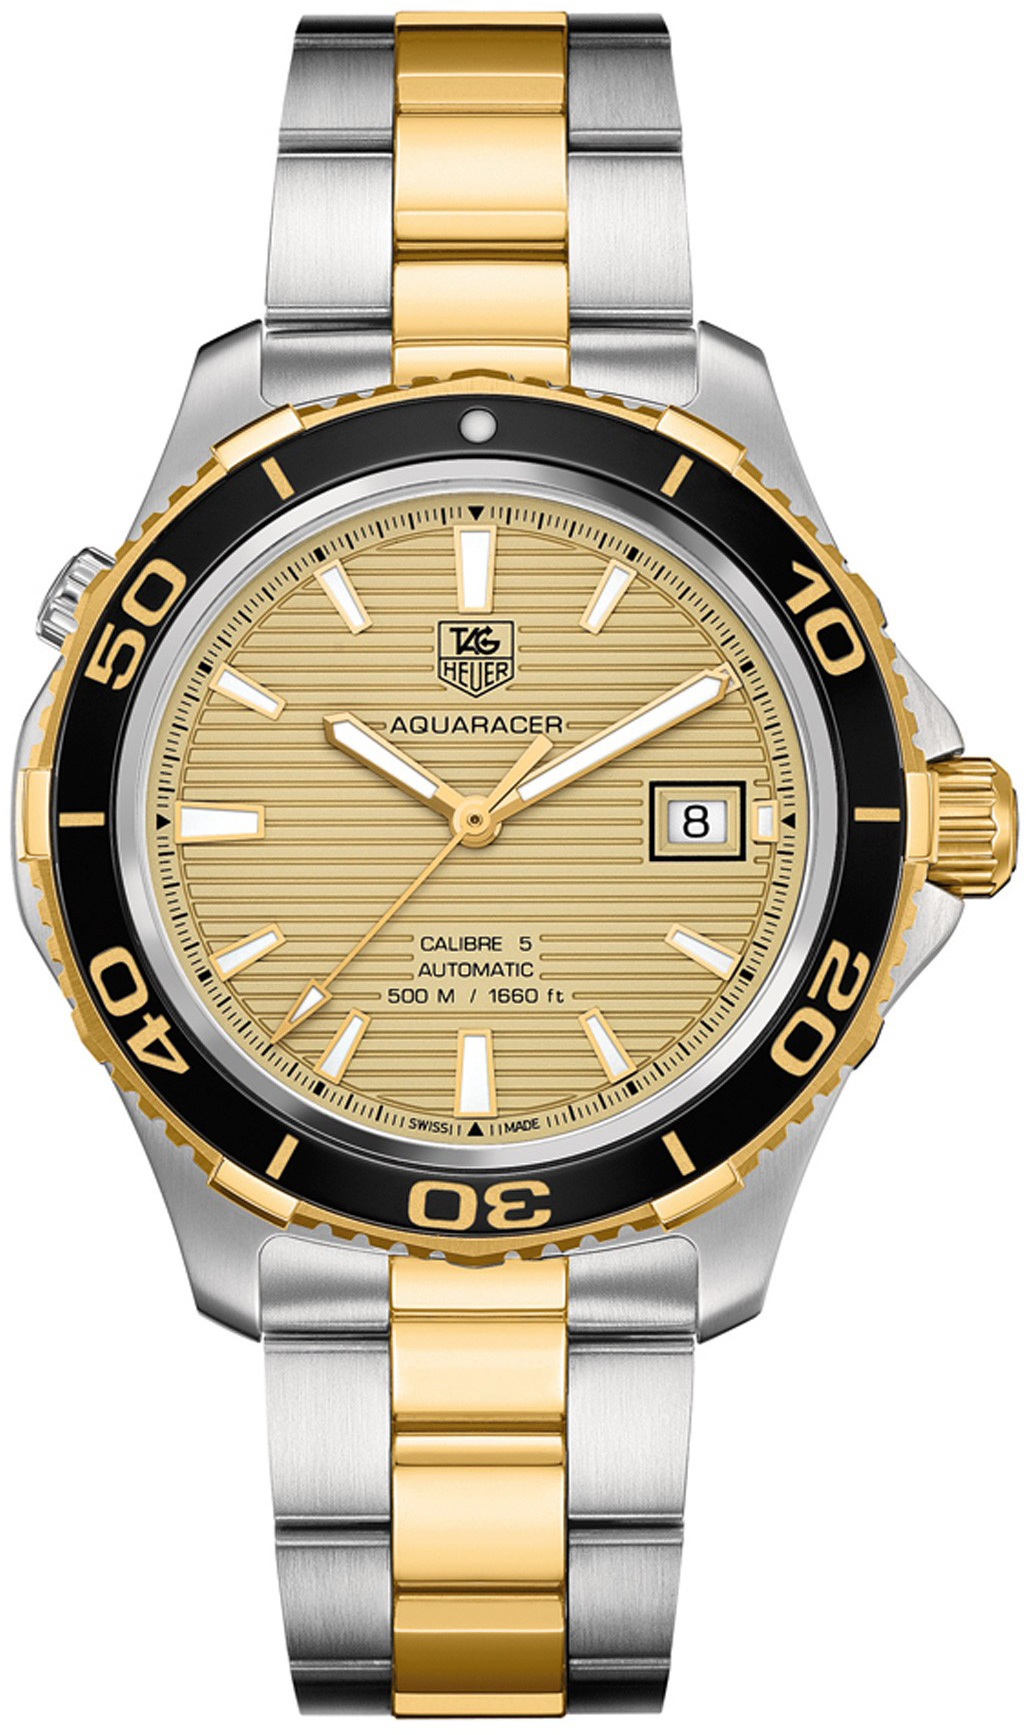 caf857f5940b2 WAK2121.BB0835 TAG Heuer Aquaracer Cal 5 500m Mens Automatic Watch